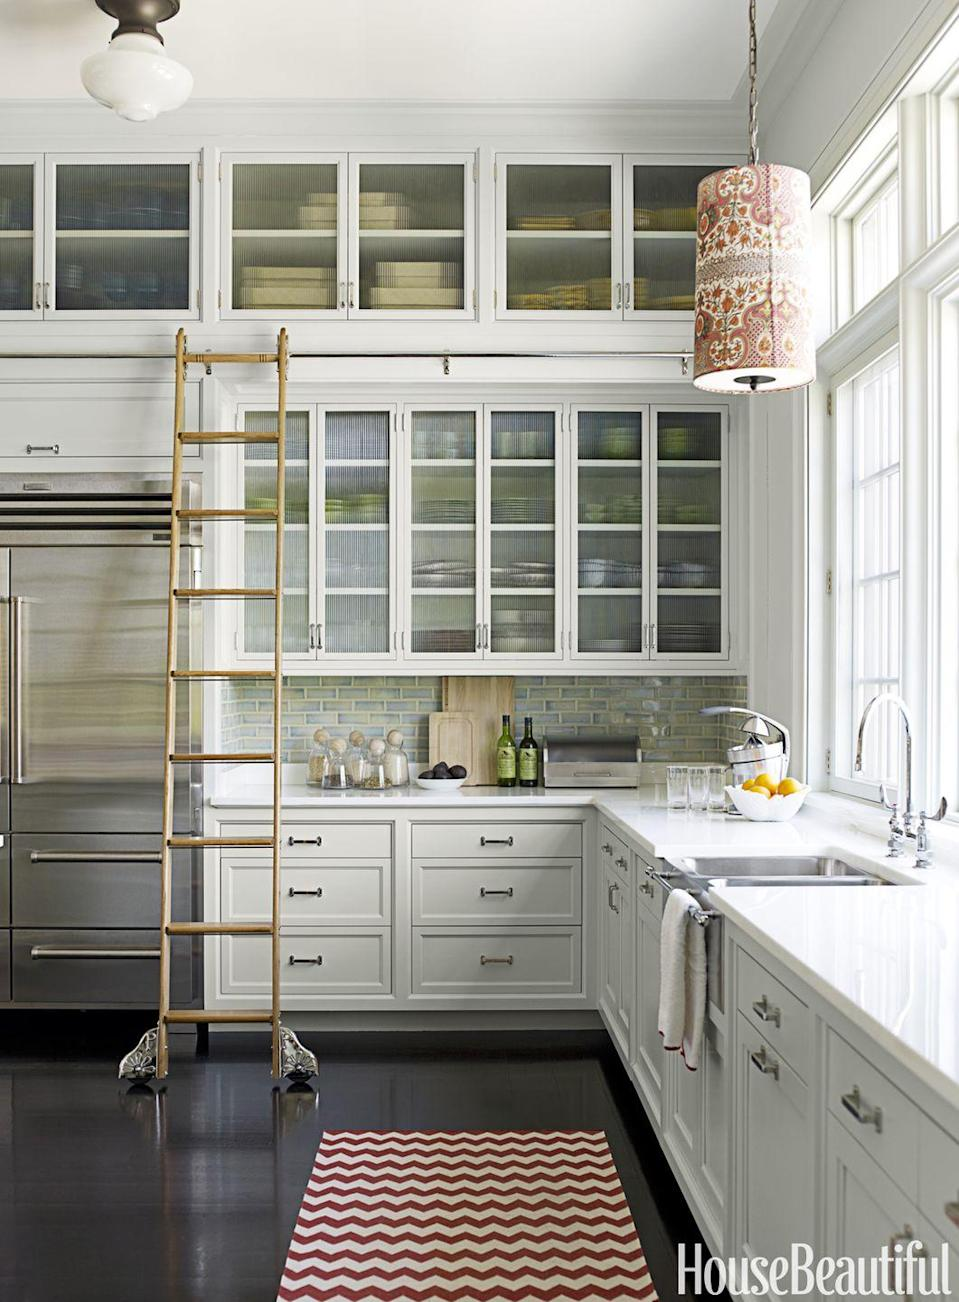 "<p>The <span class=""redactor-unlink"">subtle color in this kitchen</span> bring a coziness to the space, but don't distract from its traditional style. And we need to talk about that insanely cool rolling ladder. Plus, it'll keep things organized. </p>"